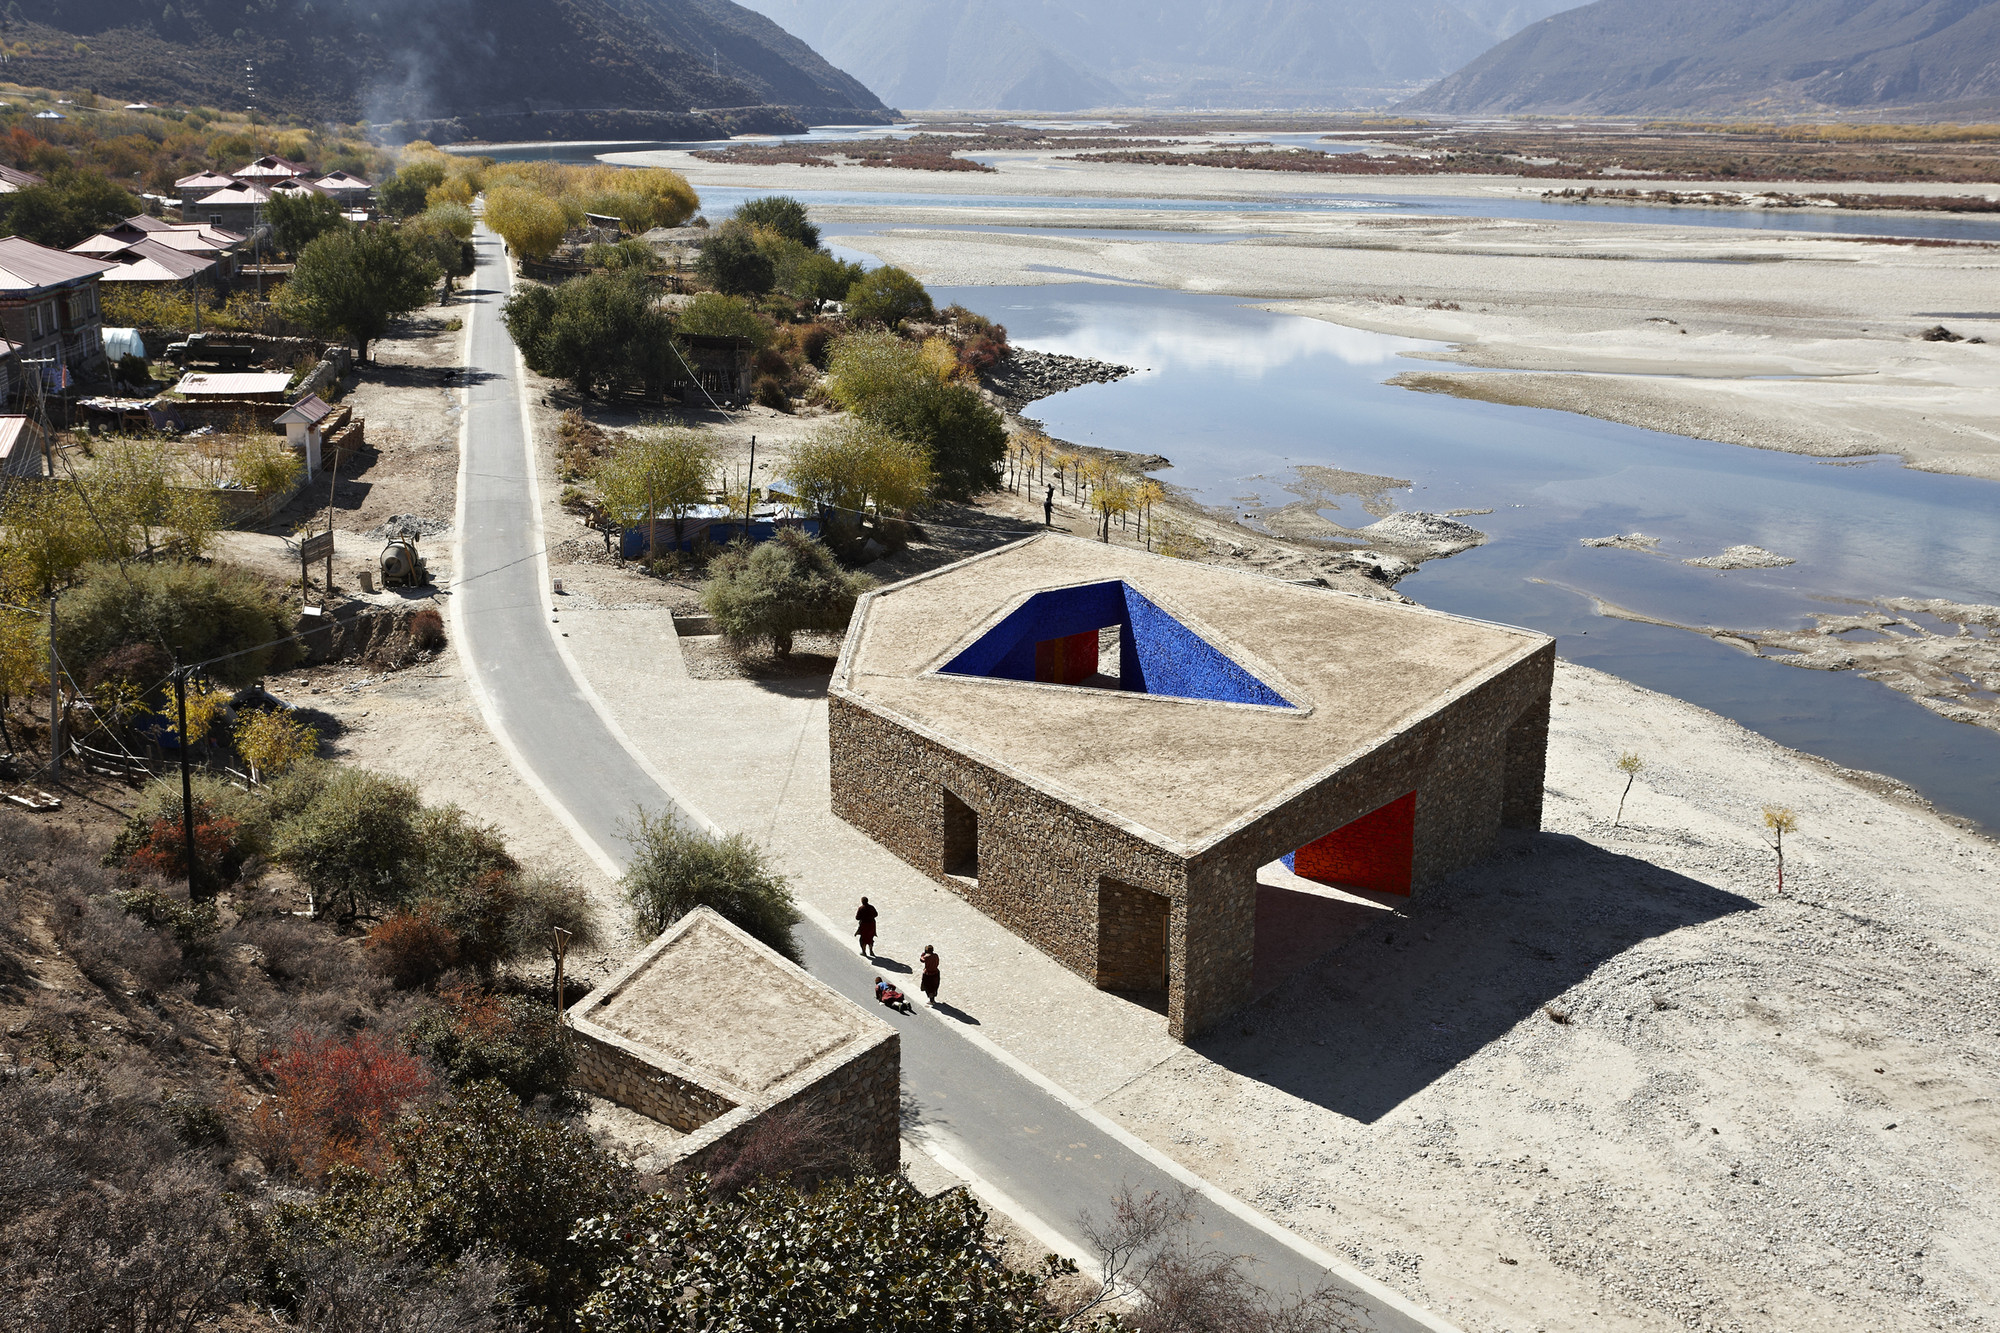 Aedes Architecture Forum Highlights ZAO/standardarchitecture, Niyang River Visitor Center / Standardarchitecture + Zhaoyang Architects. Image © Chen Su